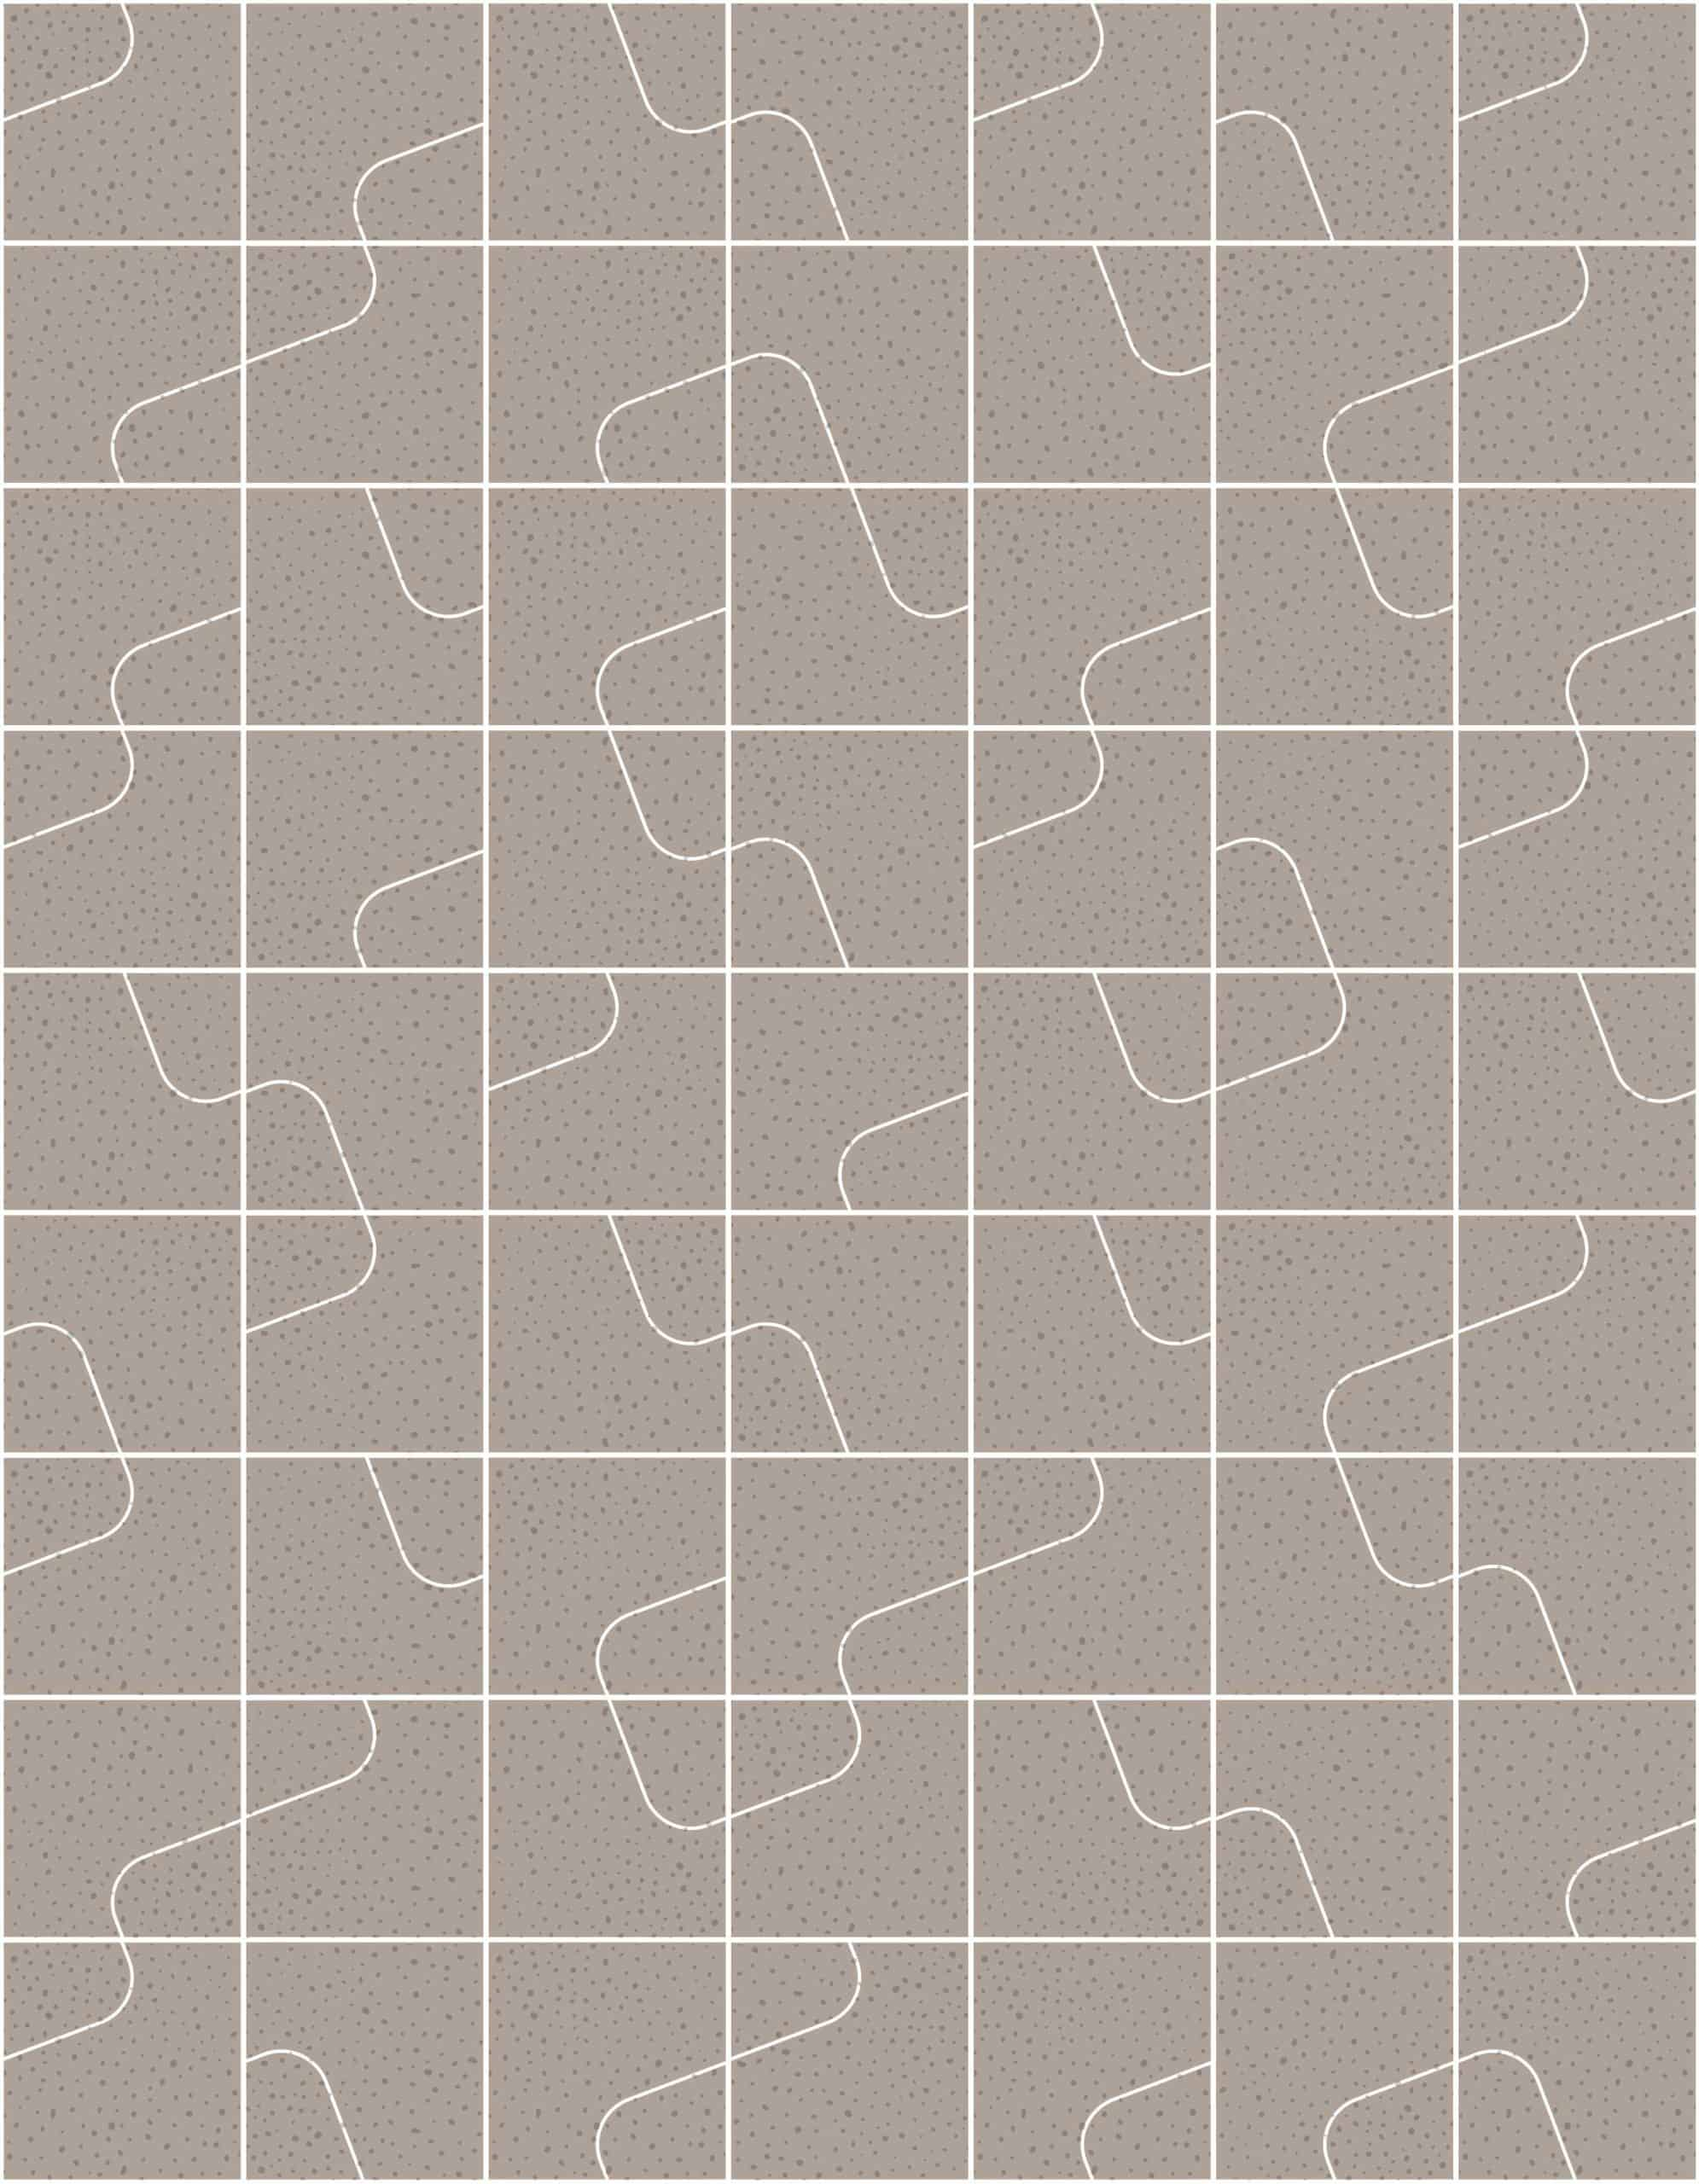 Quilt Clay Raw Tiles